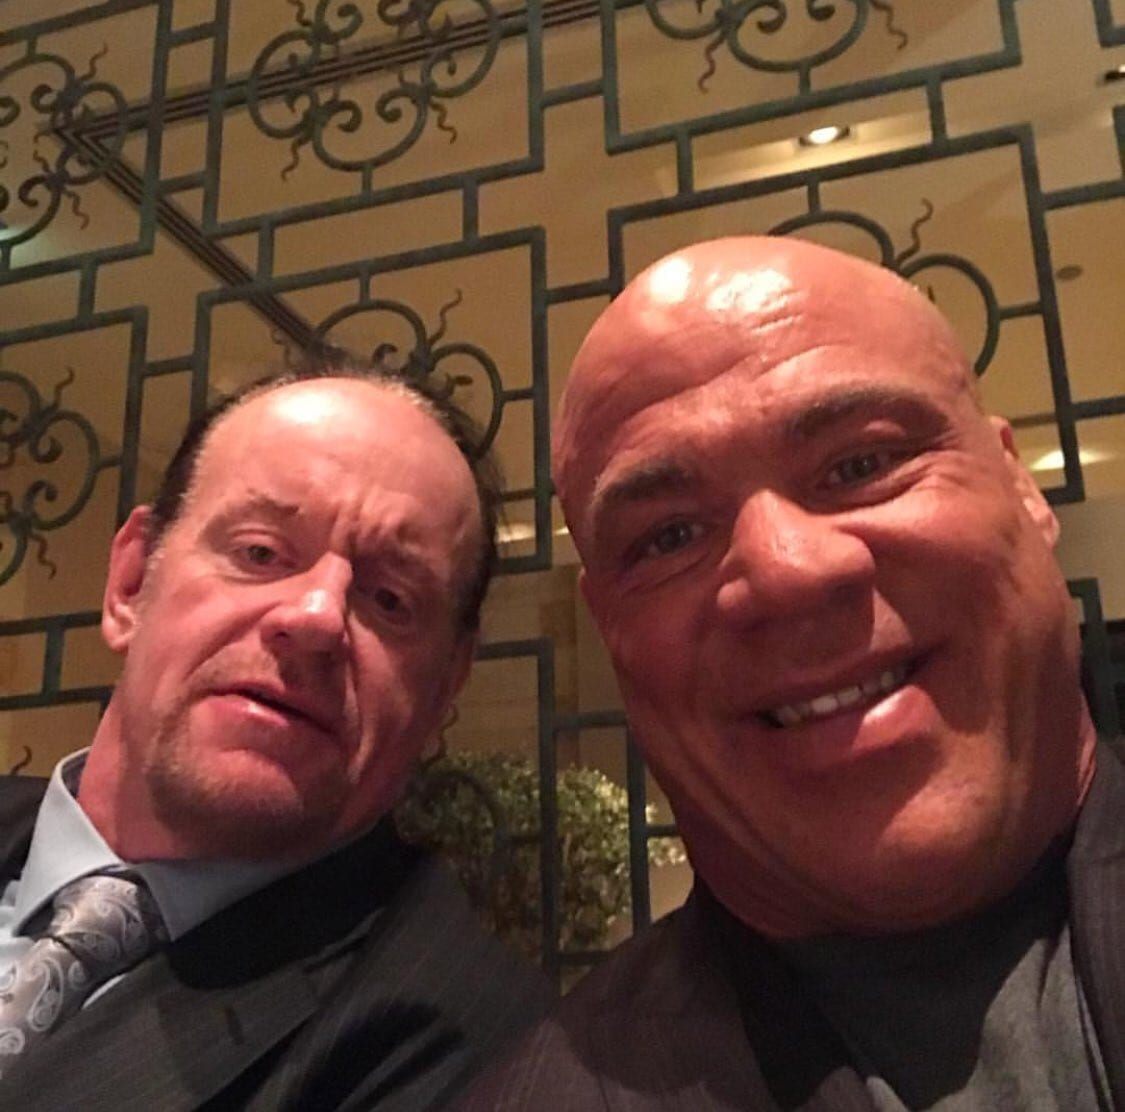 taker and angle dinner